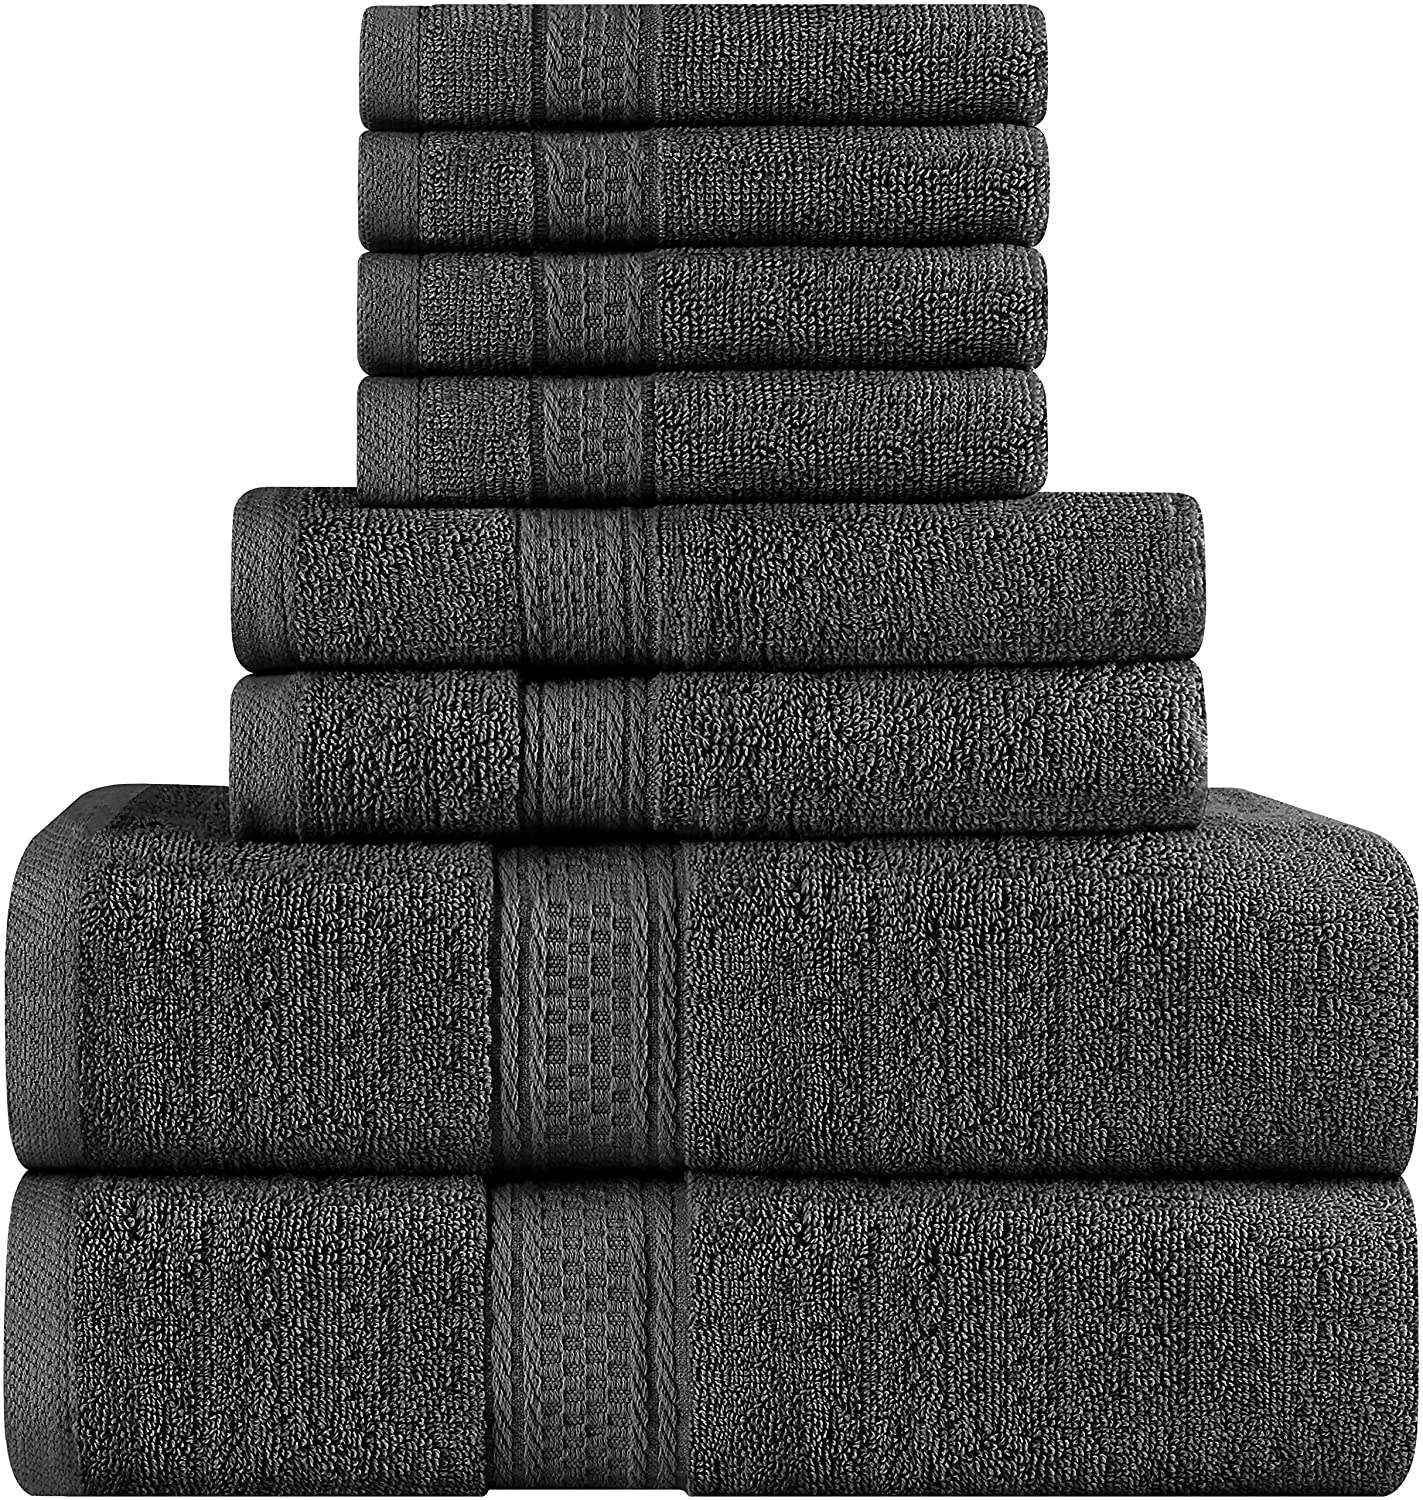 Utopia Towels Premium 8 Piece Towel Set (Grey); 2 Bath Towels, 2 Hand Towels and 4 Washcloths - Cotton - Machine Washable, Hotel Quality, Super Soft and Highly Absorbent (8 Pack)